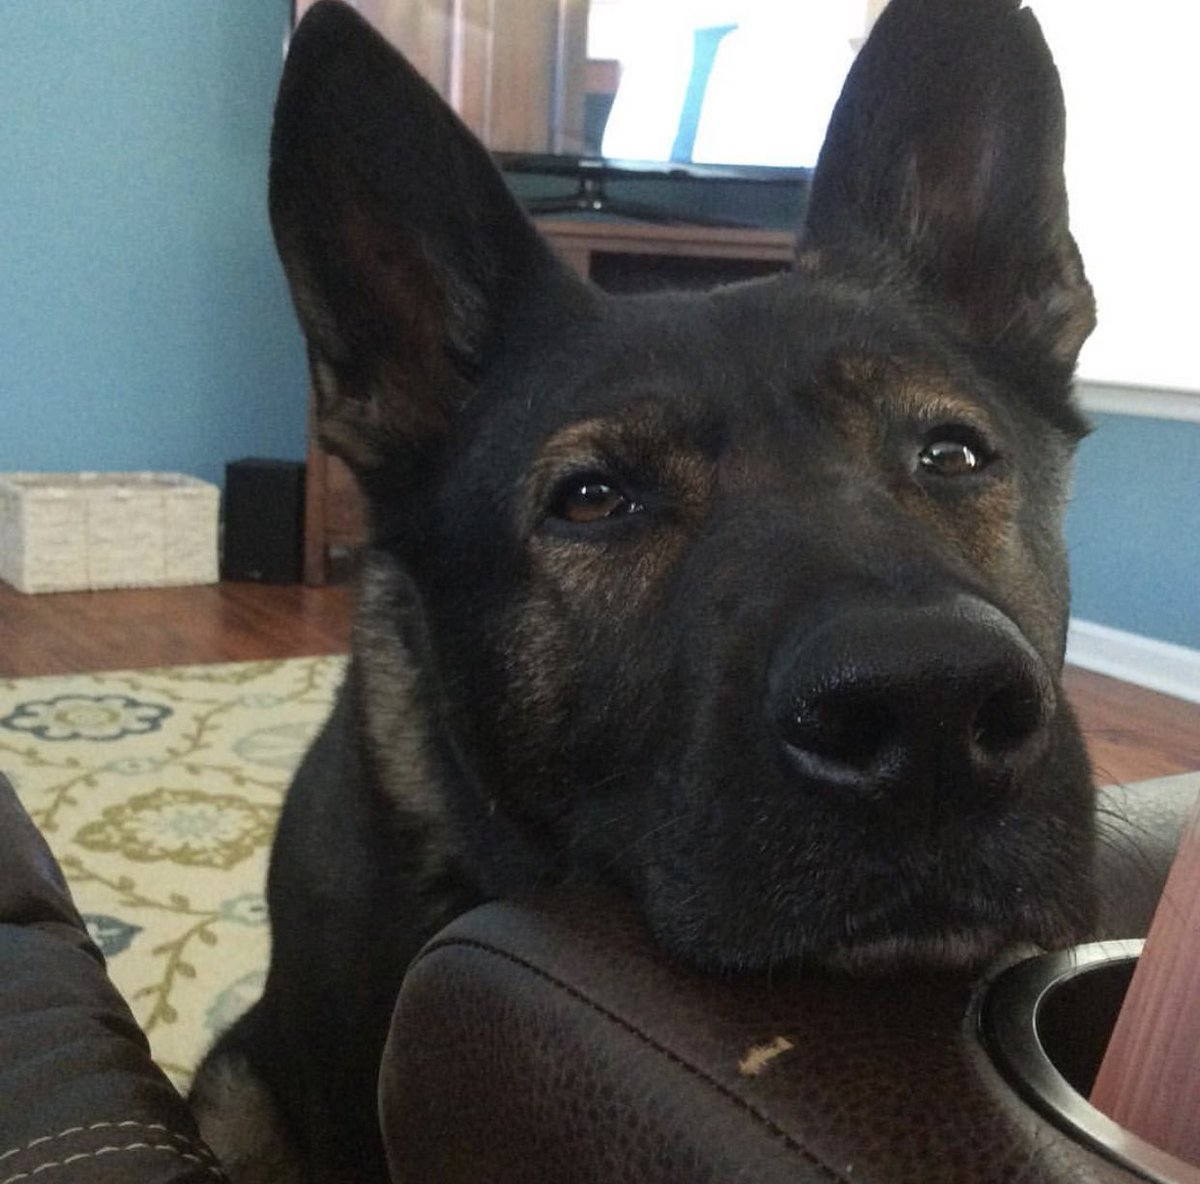 Depending on who I'm talking to.. Goodnight or good morning!   I'm off to bed but here's K9 Cam to keep you company.   #bluepawsmatter #k9 #copdog #livepd #policedog #livepdnation #livepdfamily #gsd #backthebark<br>http://pic.twitter.com/bC6DUtr9e0